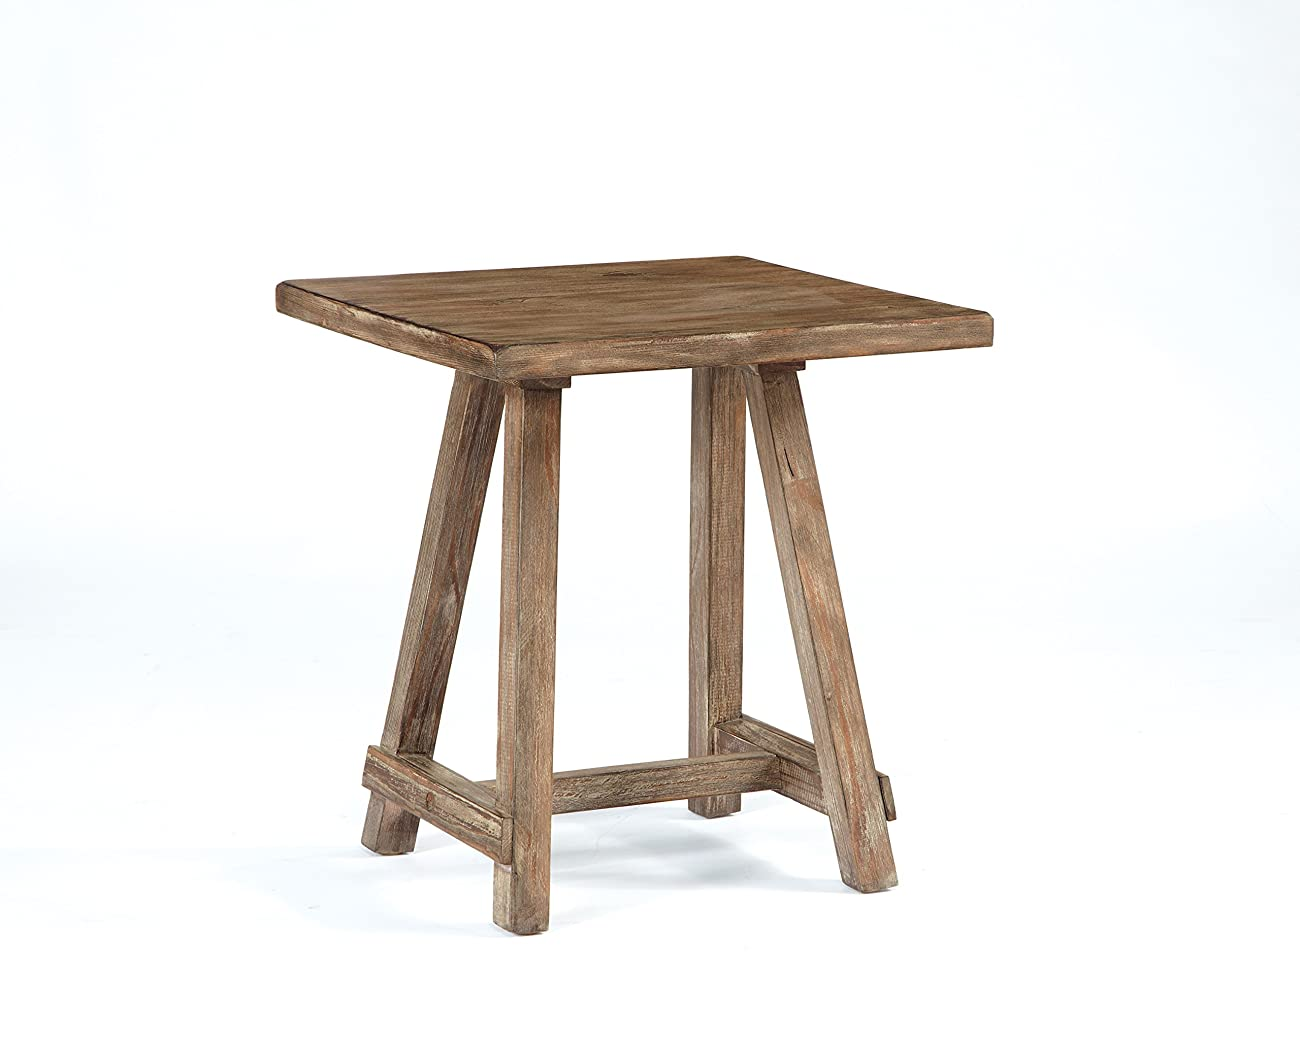 Signature Design by Ashley T500-502 Rustic Accent Side End Table 0